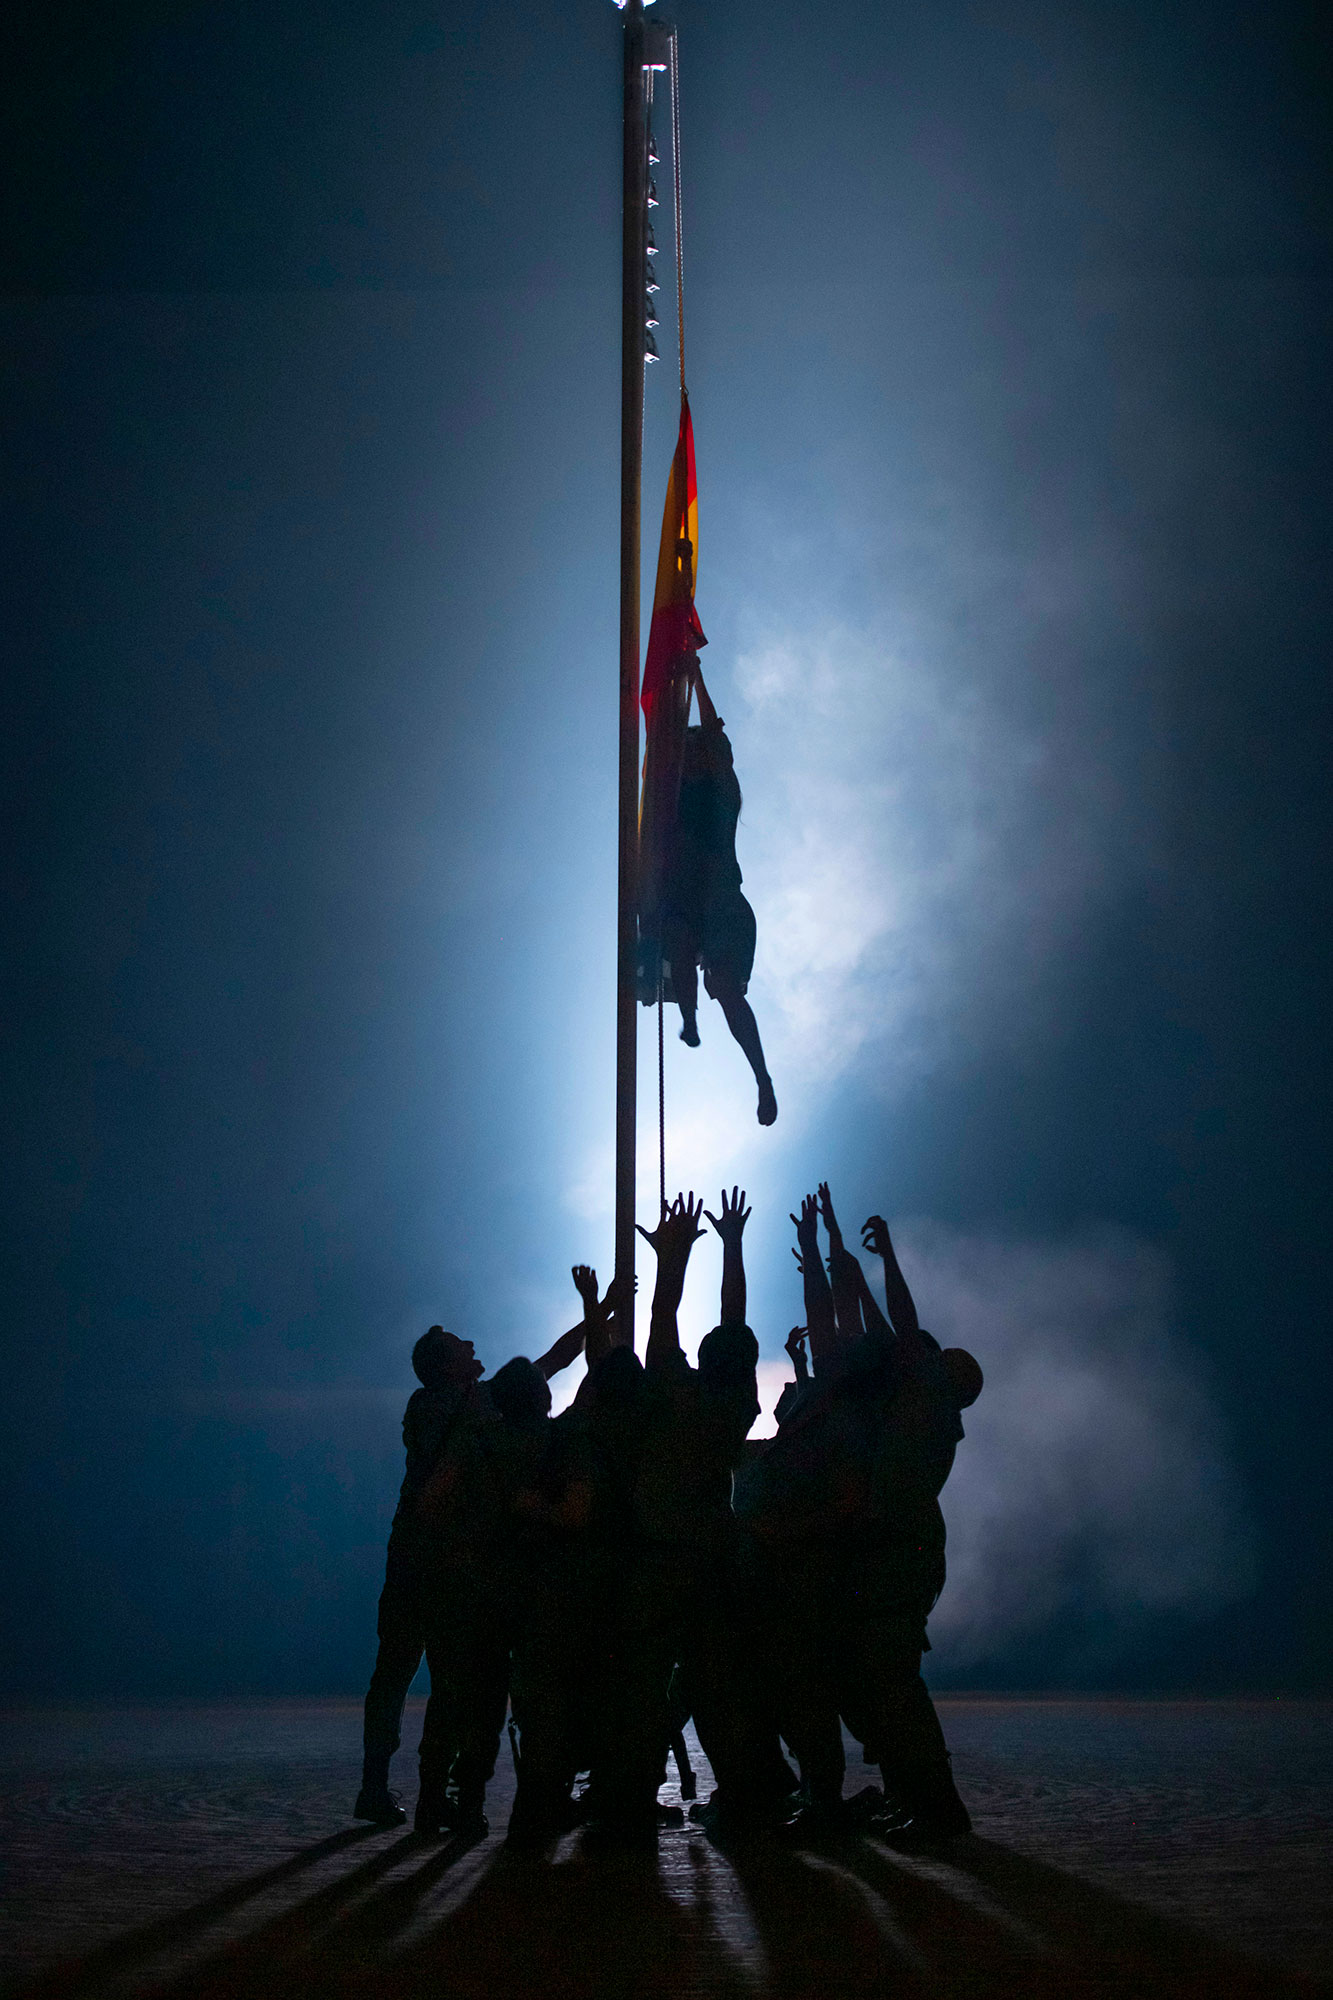 Silhouetted group stand around a flagpole, reaching up for the Spanish flag